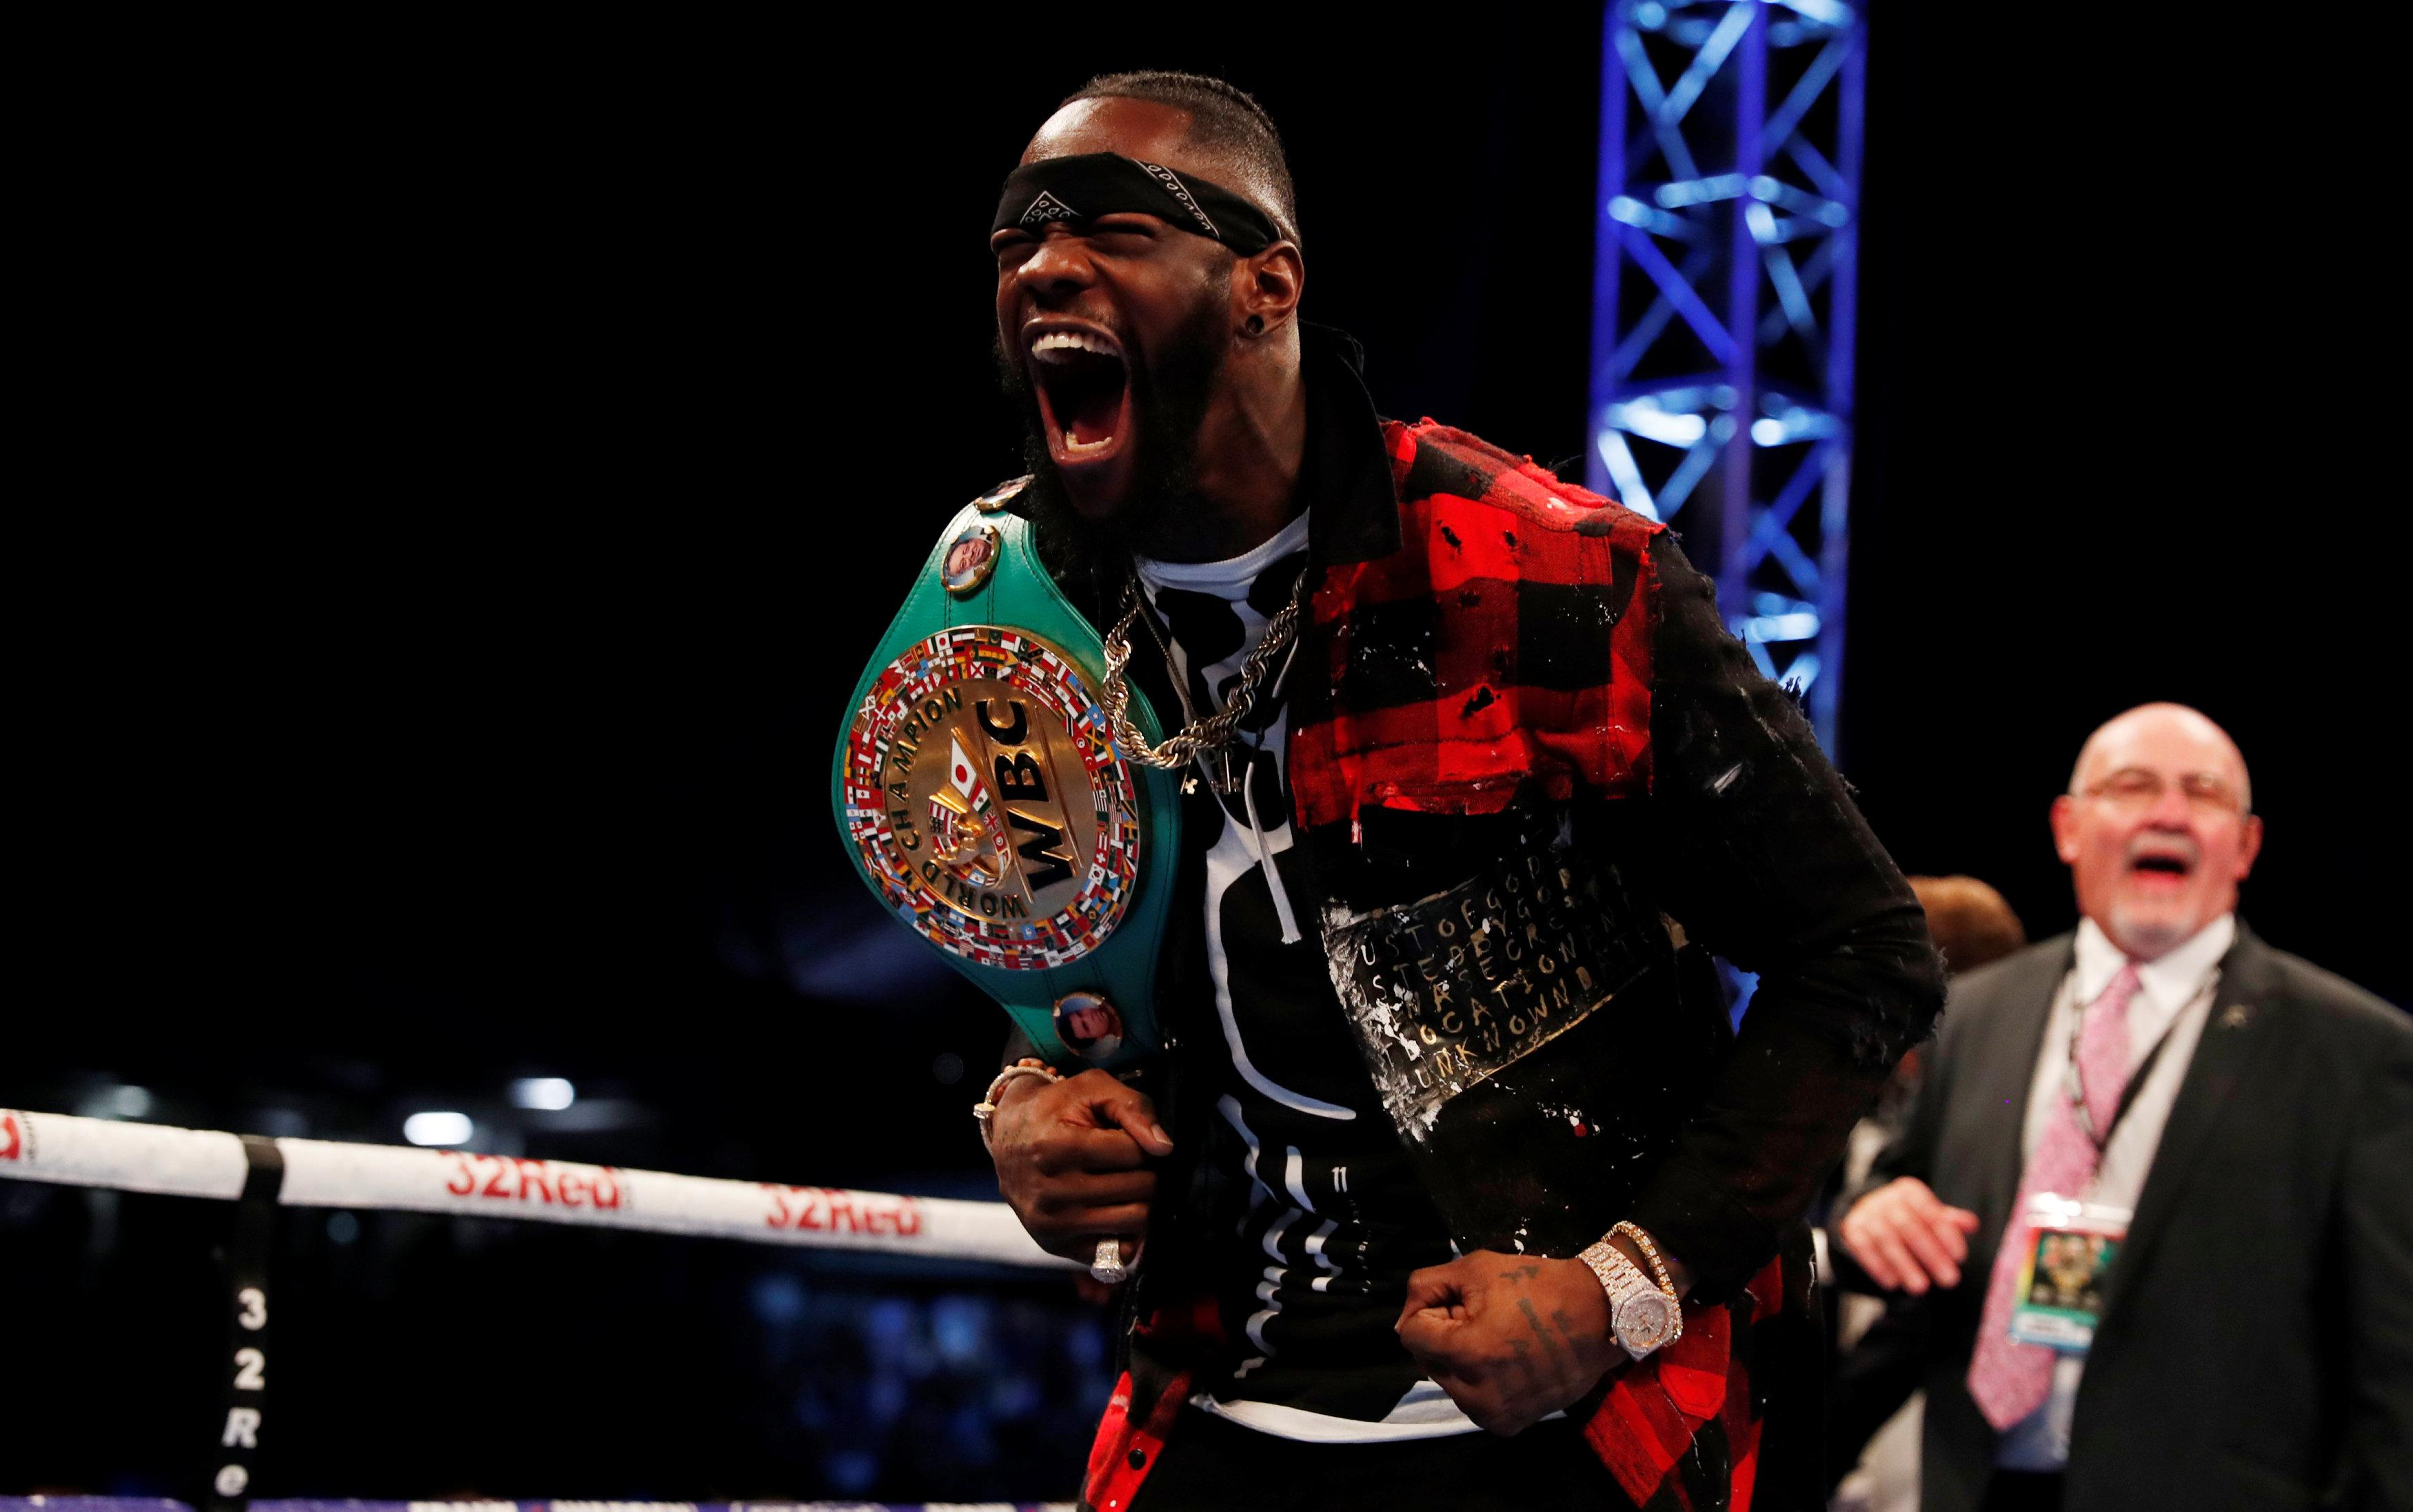 Wilder has knocked out out 39 of his 40 opponents inside the squared circle